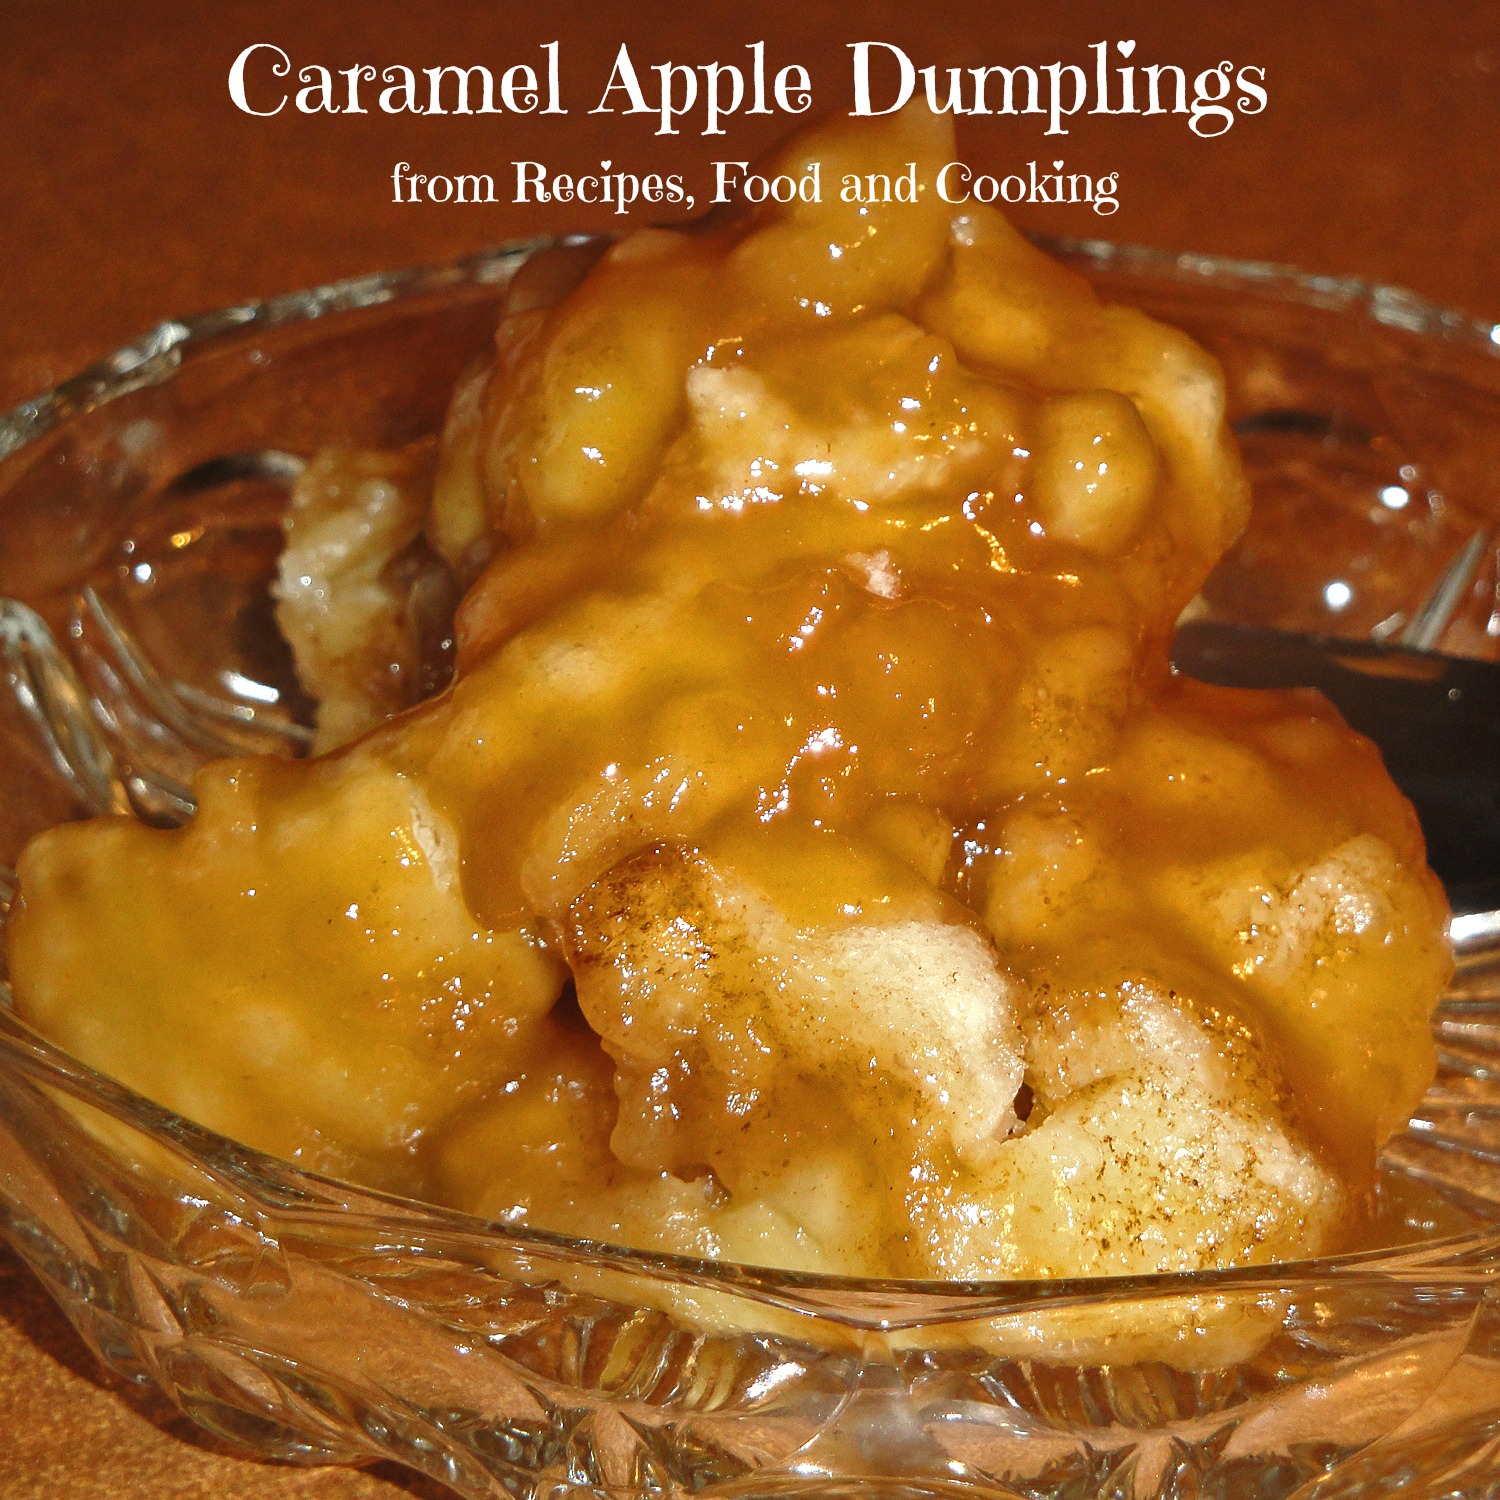 Caramel Apple Dumplings